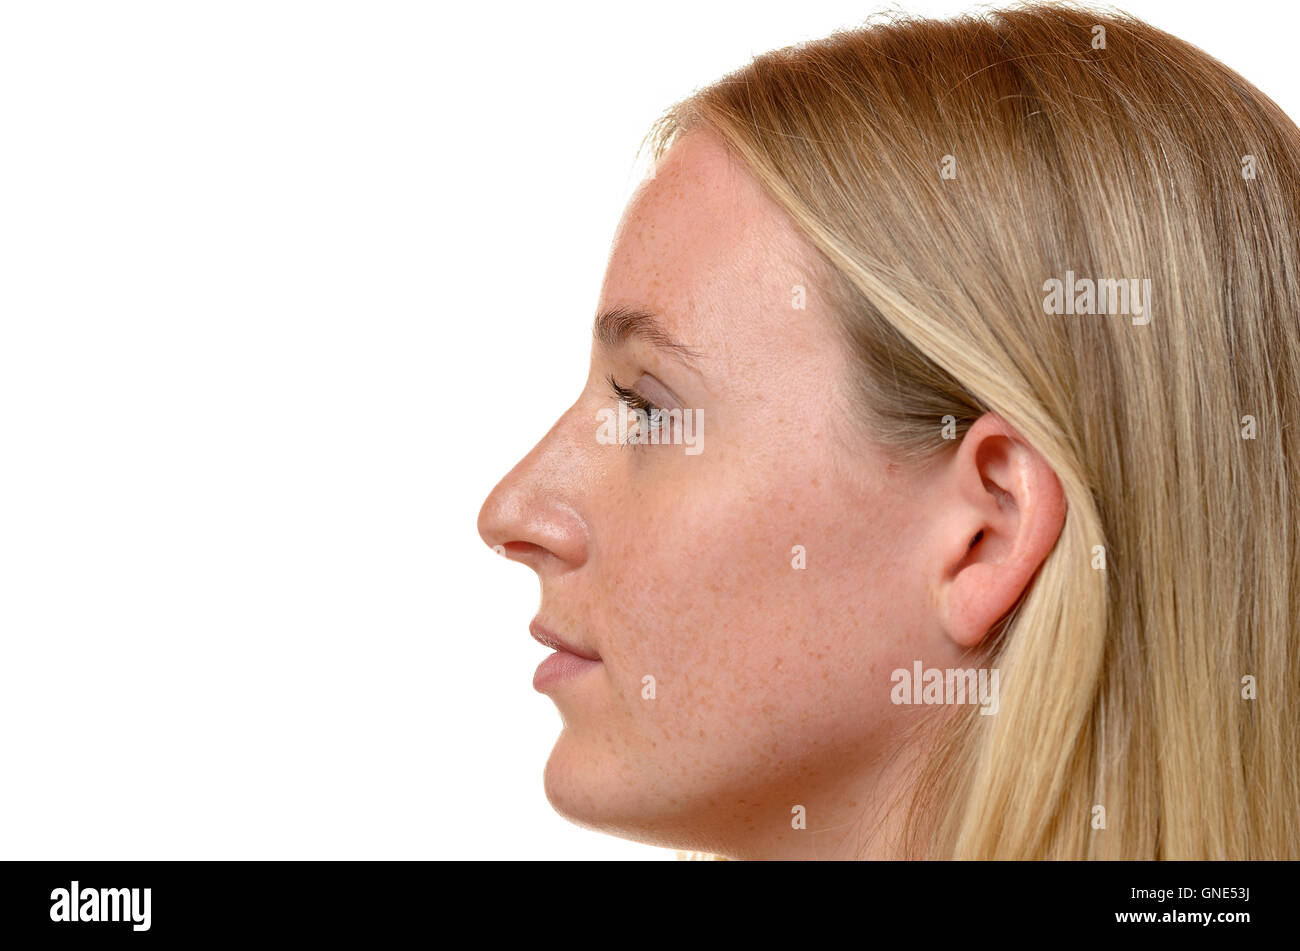 Side profile view of the face of an attractive blond woman with her long hair tucked behind her ear isolated on - Stock Image